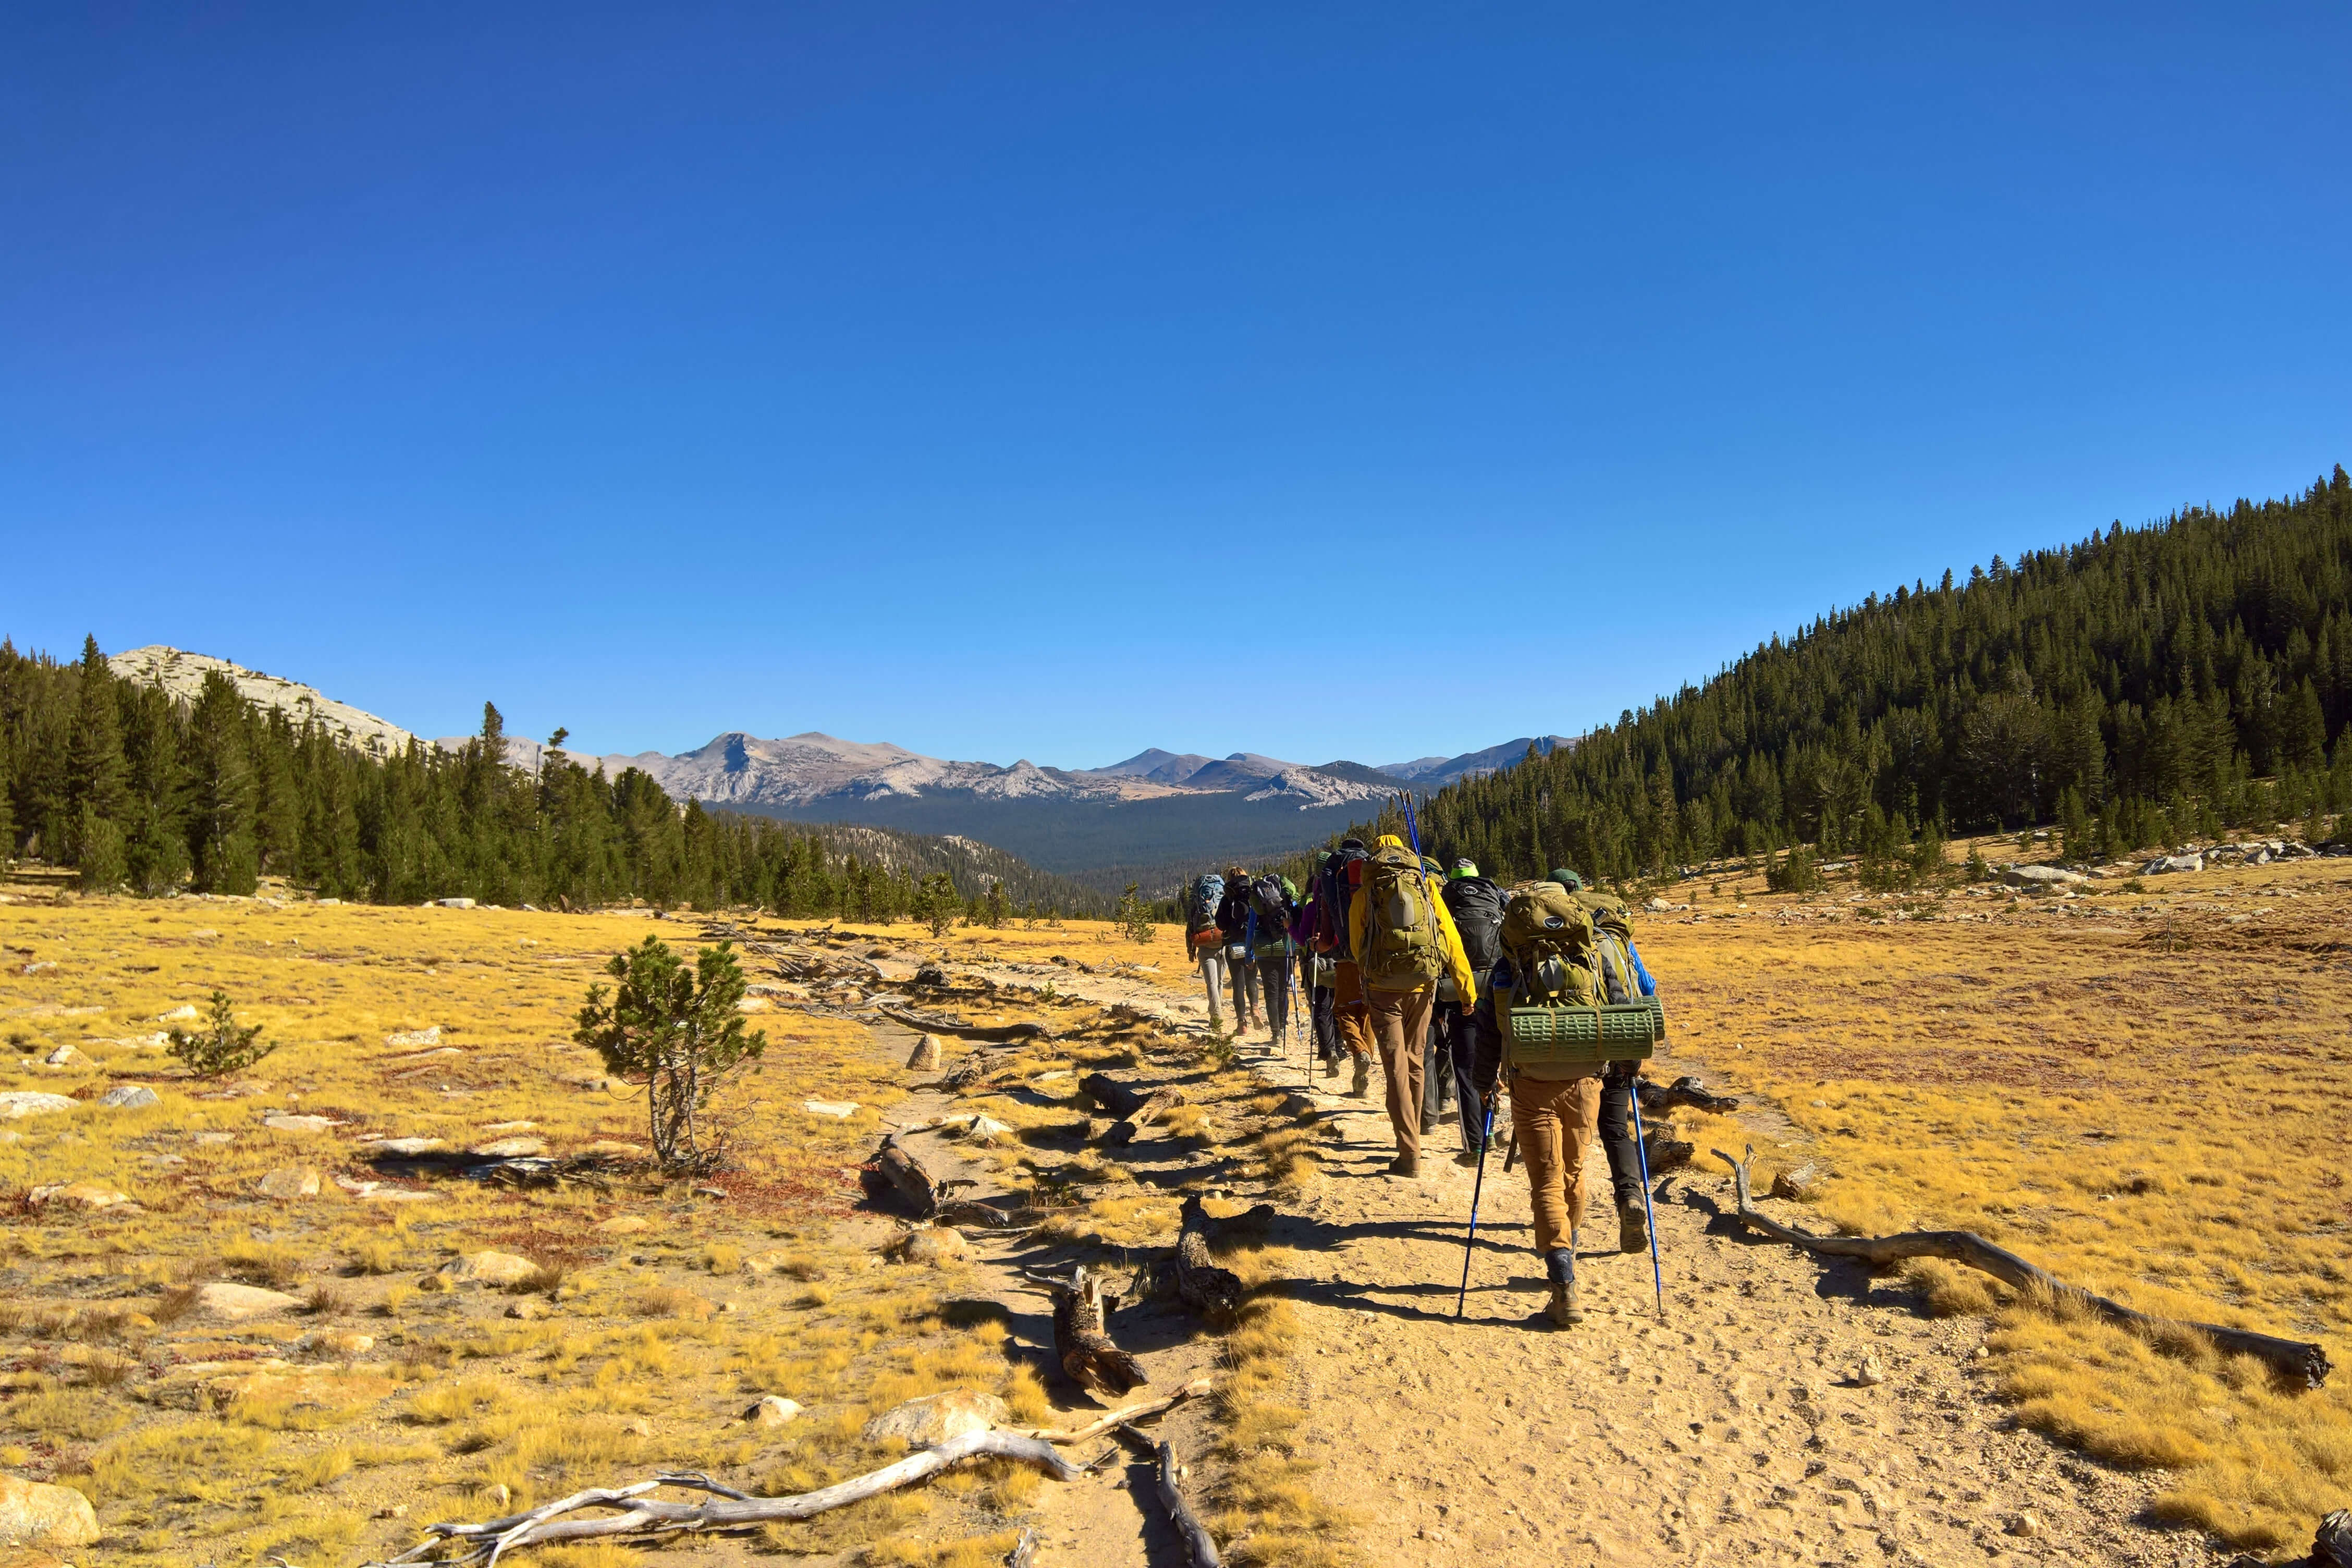 Students walking on a hiking trail through yellow brush towards the mountains